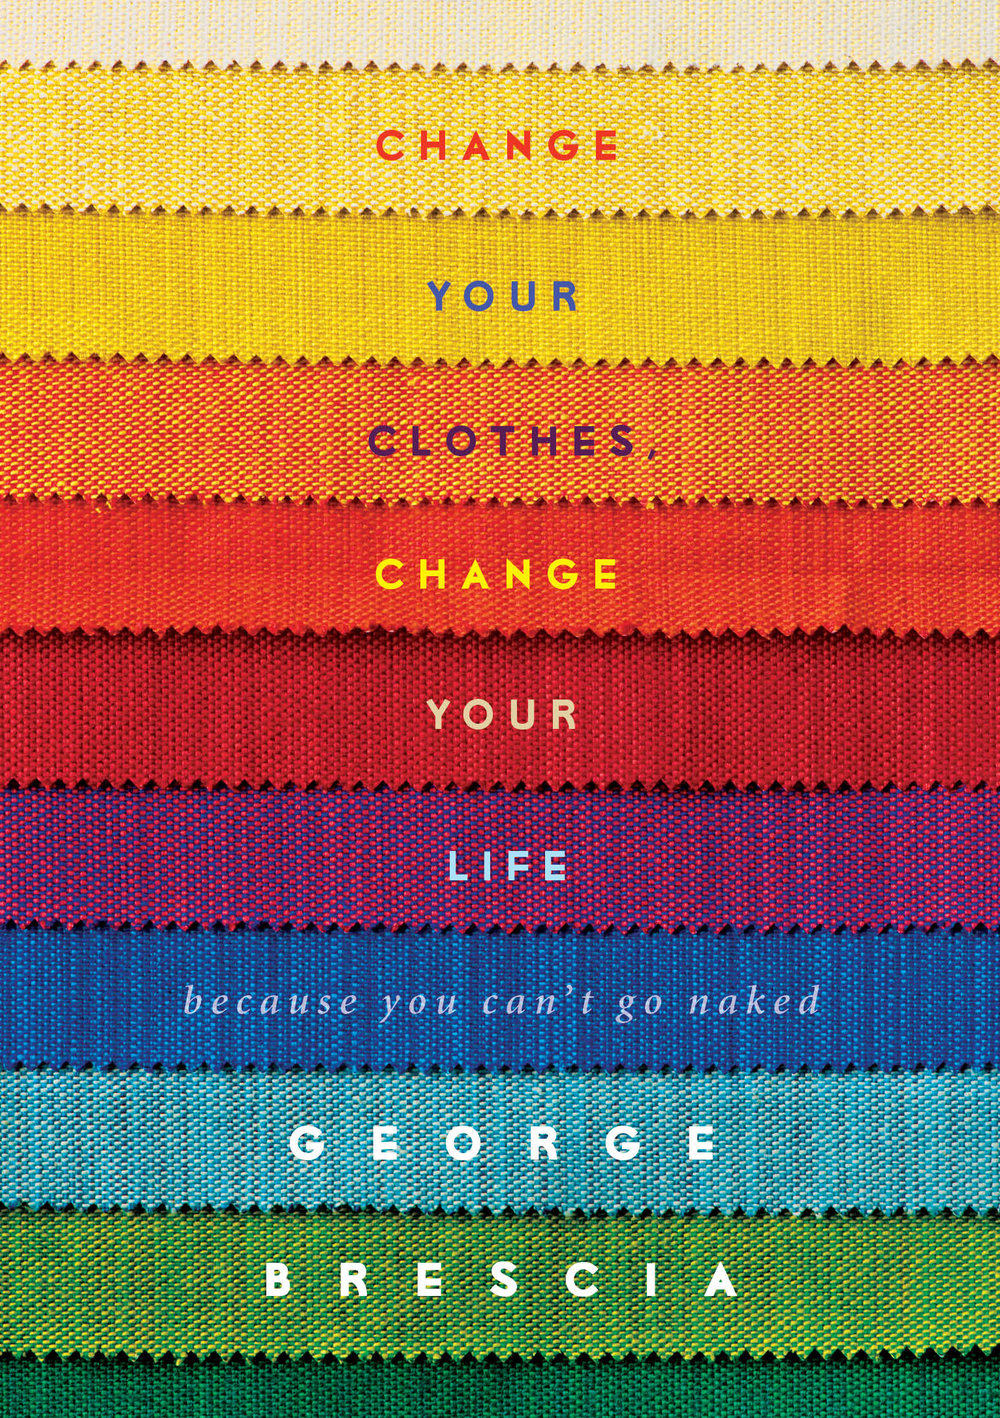 """Change Your Clothes, Change Your Life: Because You Can't Go Naked"", George Brescia"